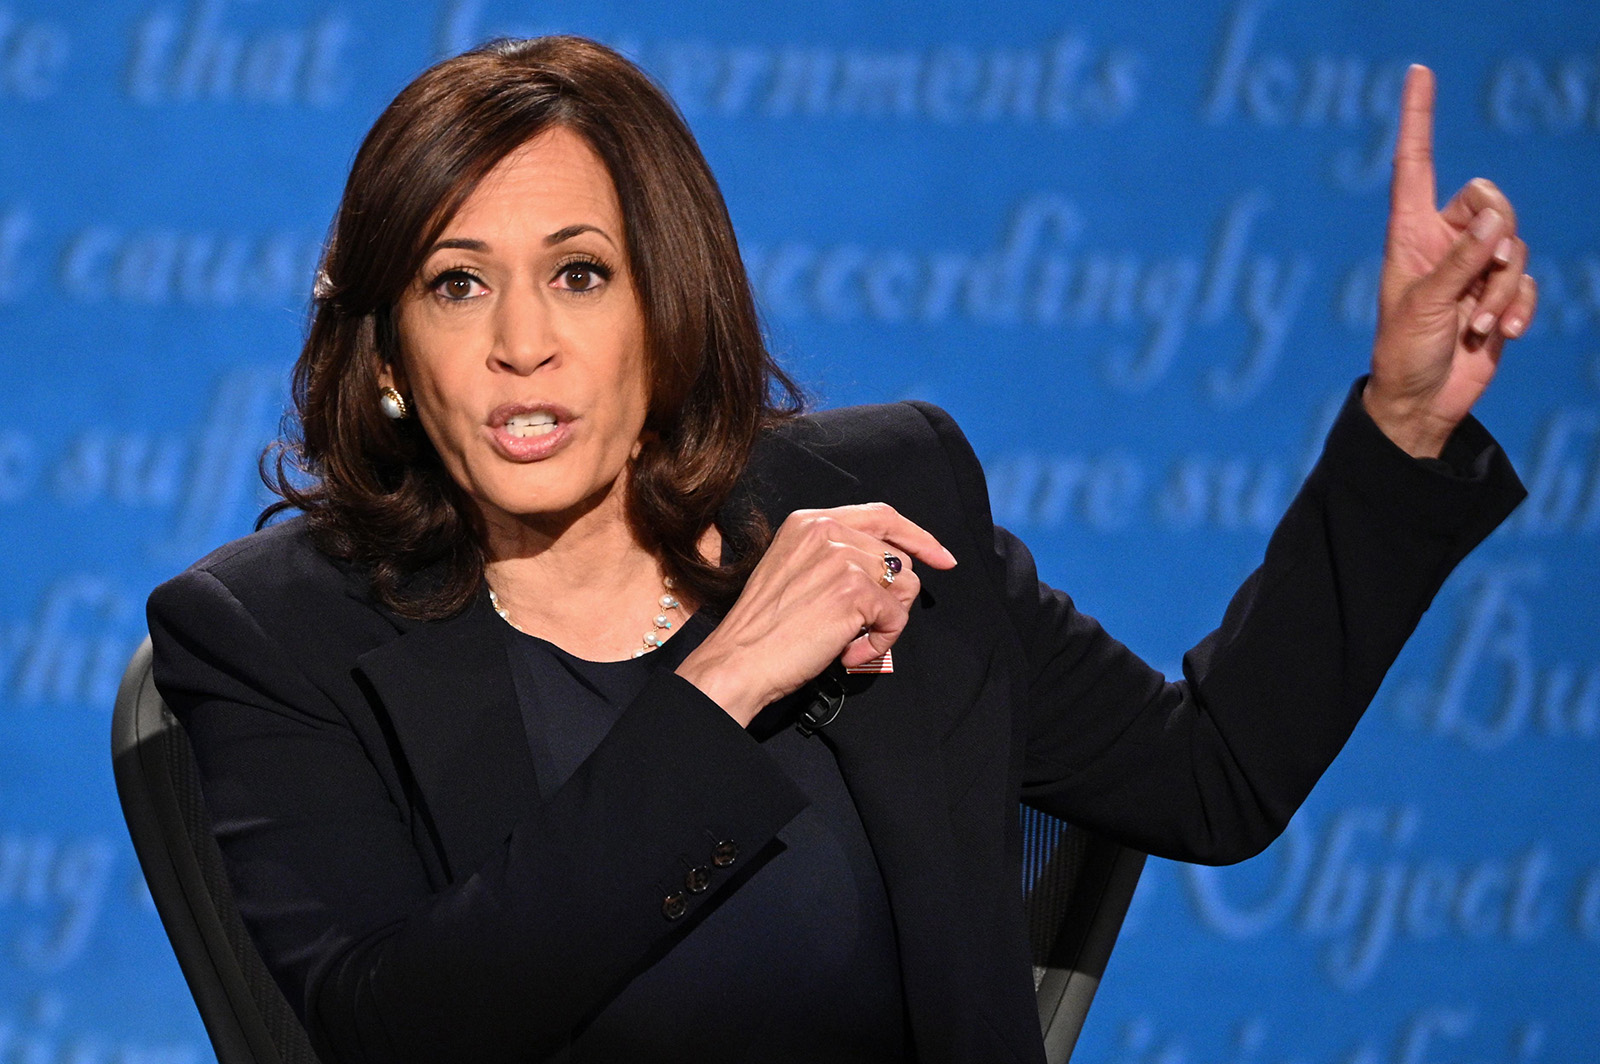 Democratic vice presidential nominee and Senator from California, Kamala Harris gestures as she speaks during the vice presidential debate in Salt Lake City on Wednesday.